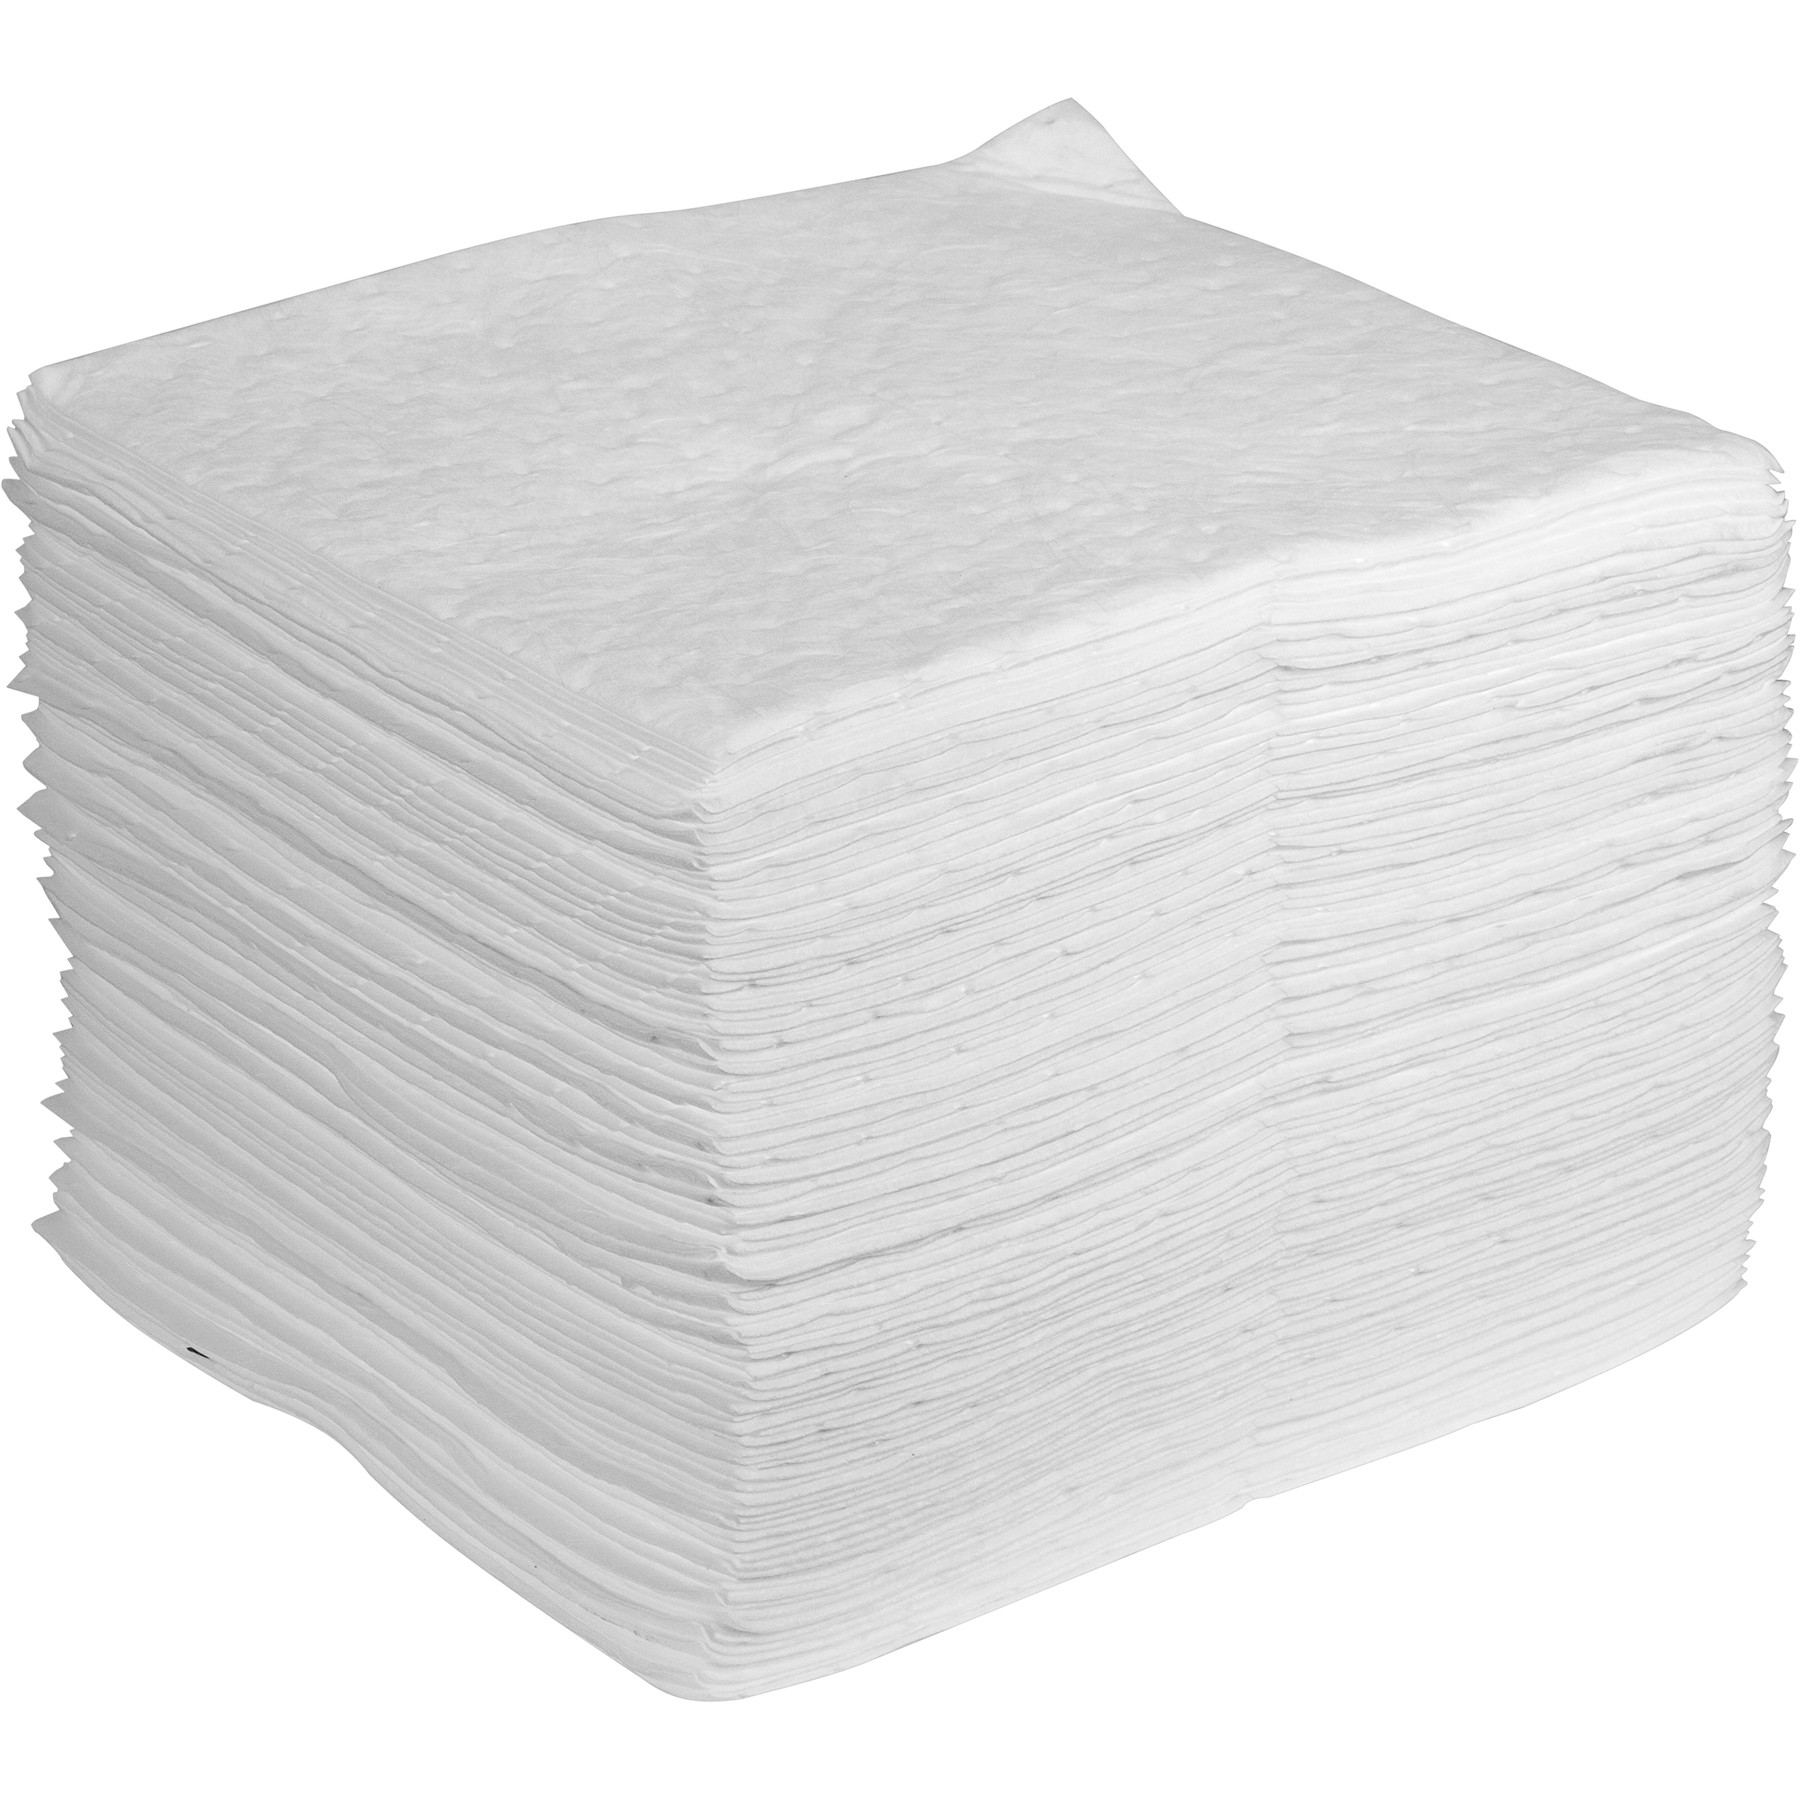 Absorbent Products